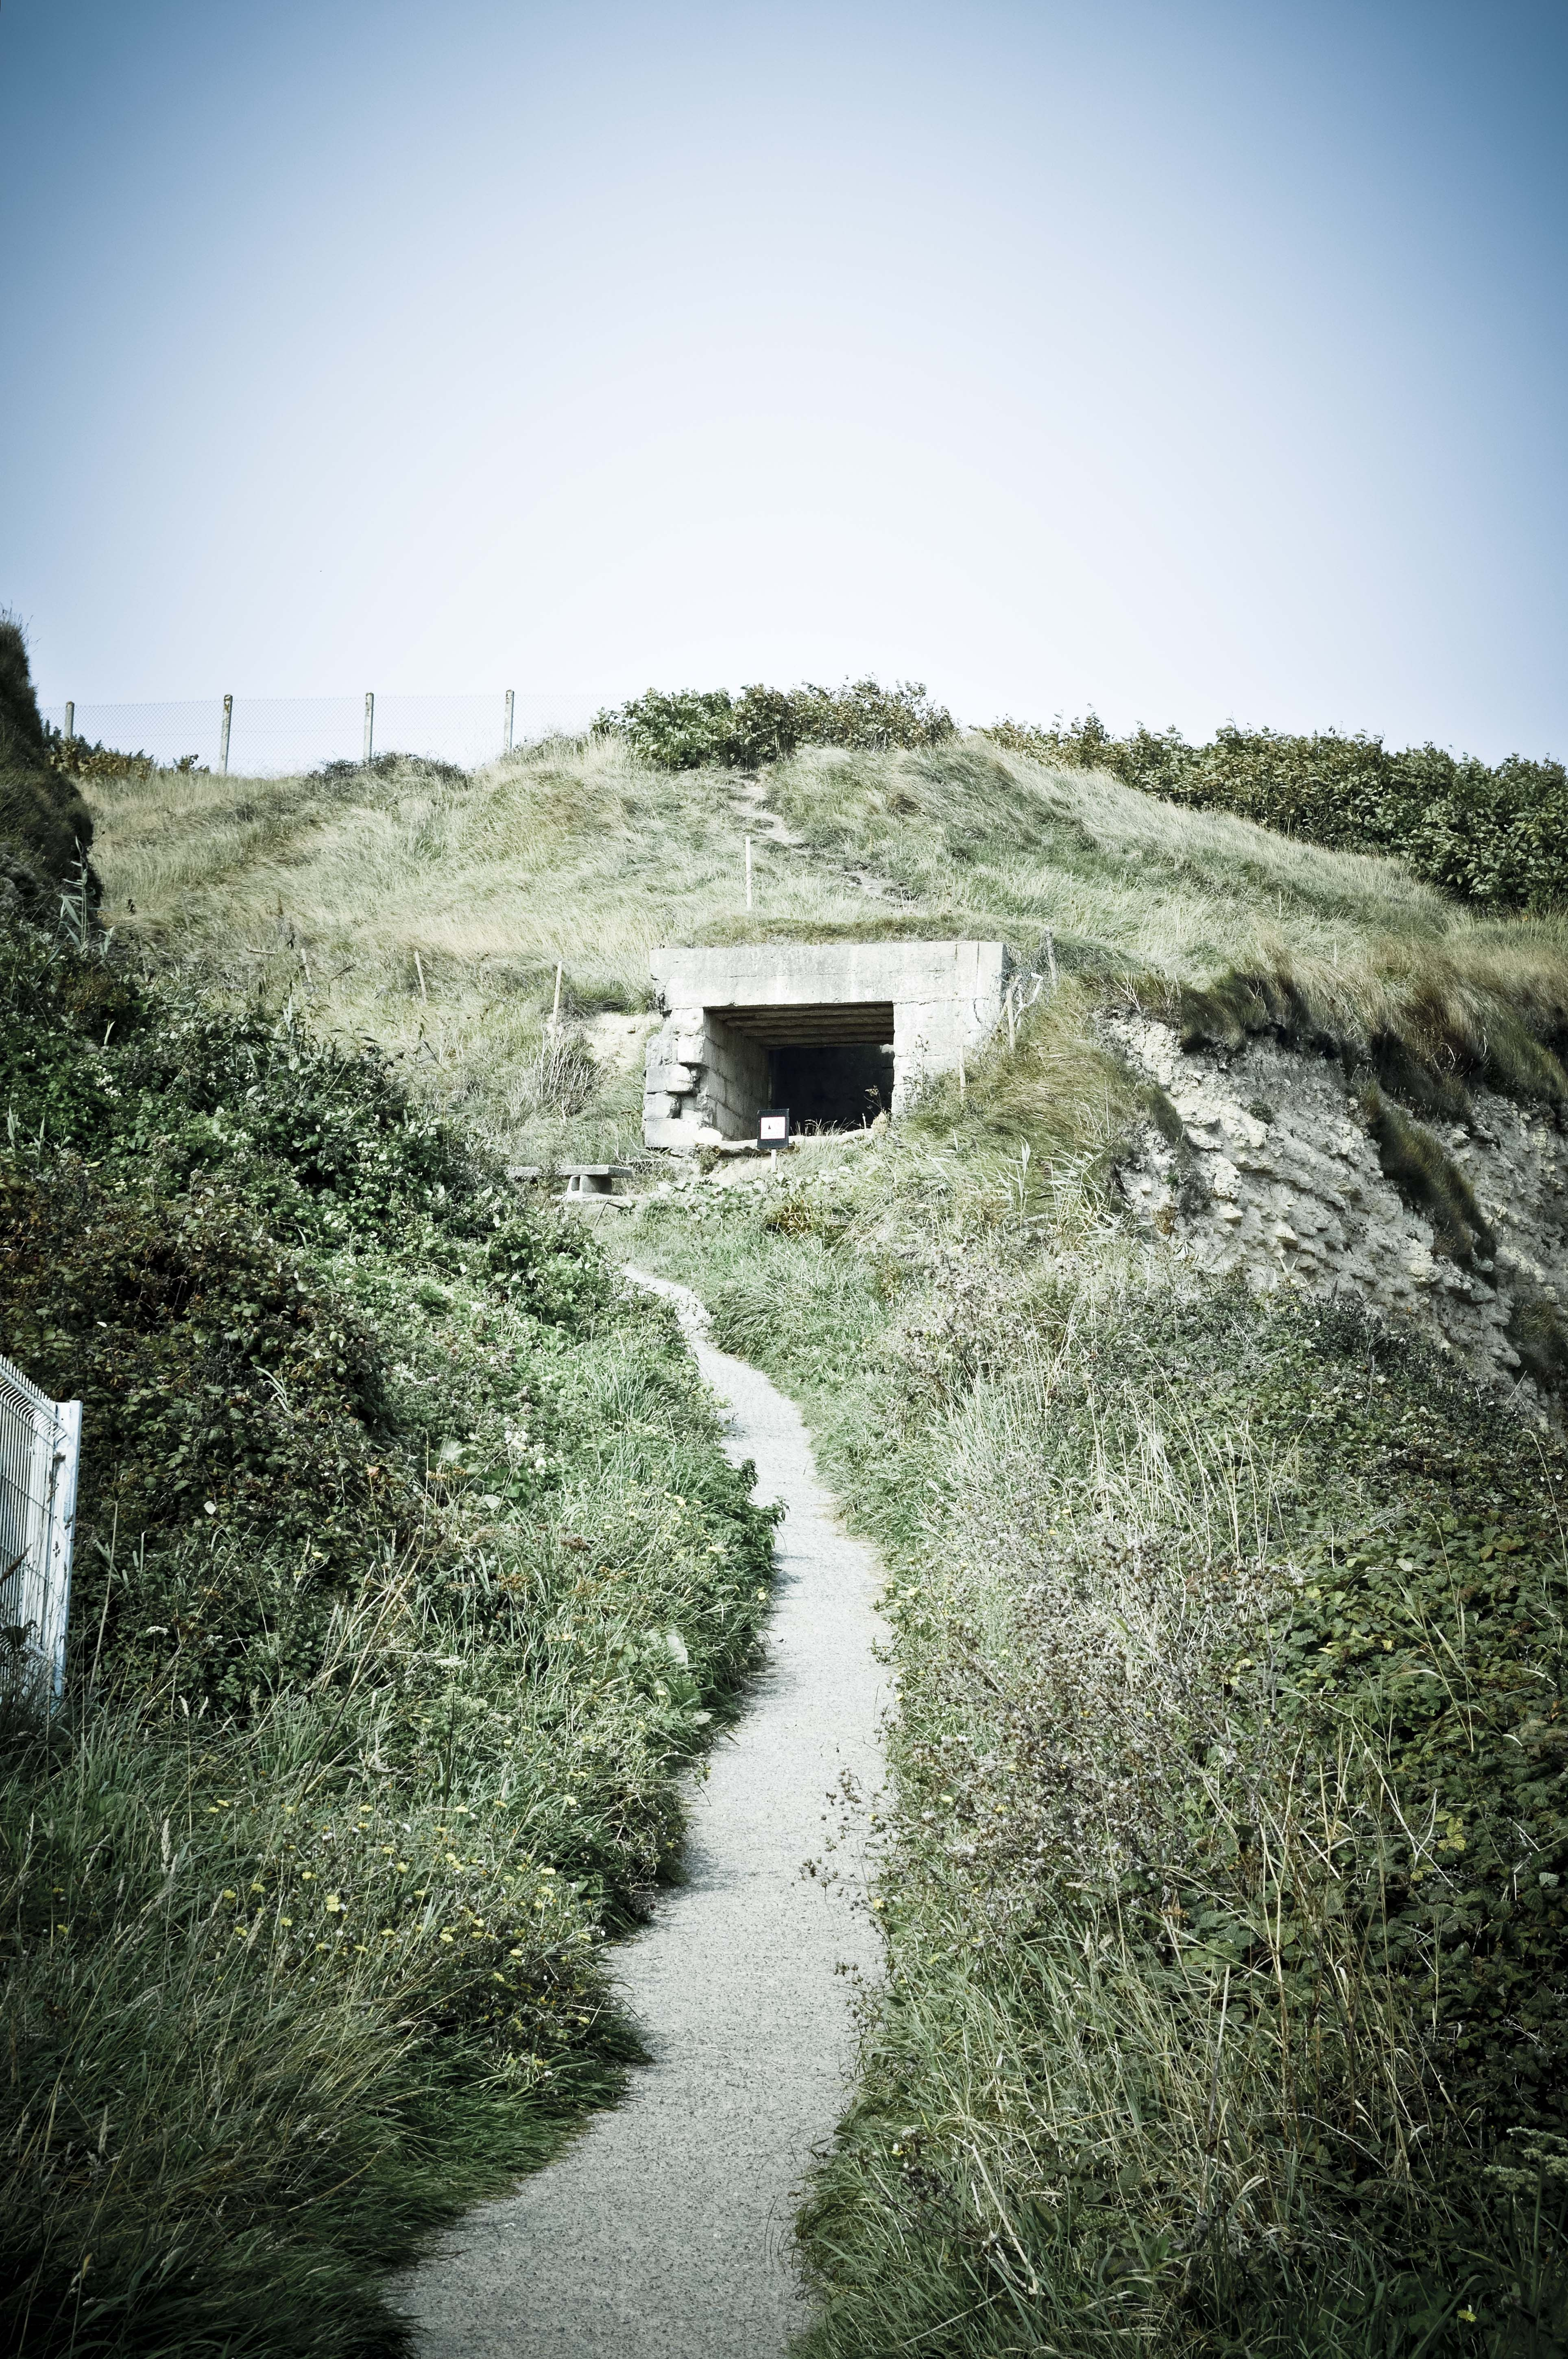 Omaha Beach MG position, Dog green sector. This gun position over looks the artillery on the beach, the main exit or draw, and this main path up into the bluffs